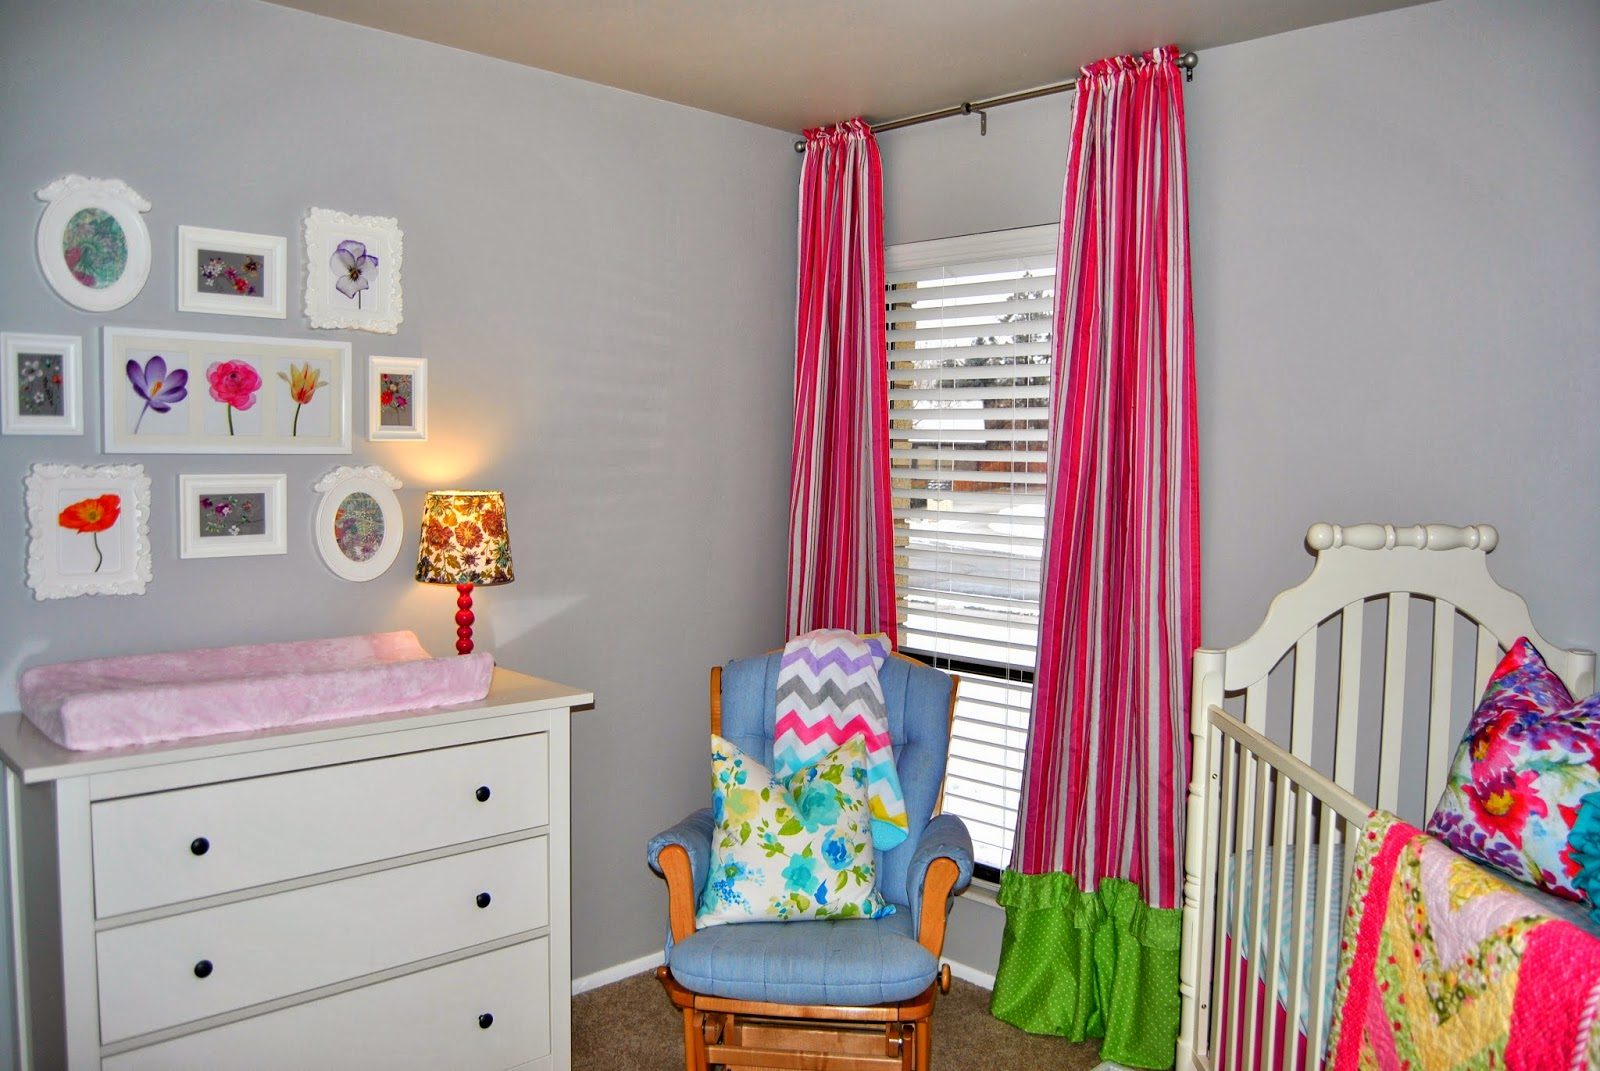 Ikea, wall gallery, blue, pink, turquoise, green, purple, curtains, hot pink curtains, gray walls, seattle, poufs above crib, white furniture, nursery, tjmaxx, throw pillows, studio 7 interior design, hemnes dresser